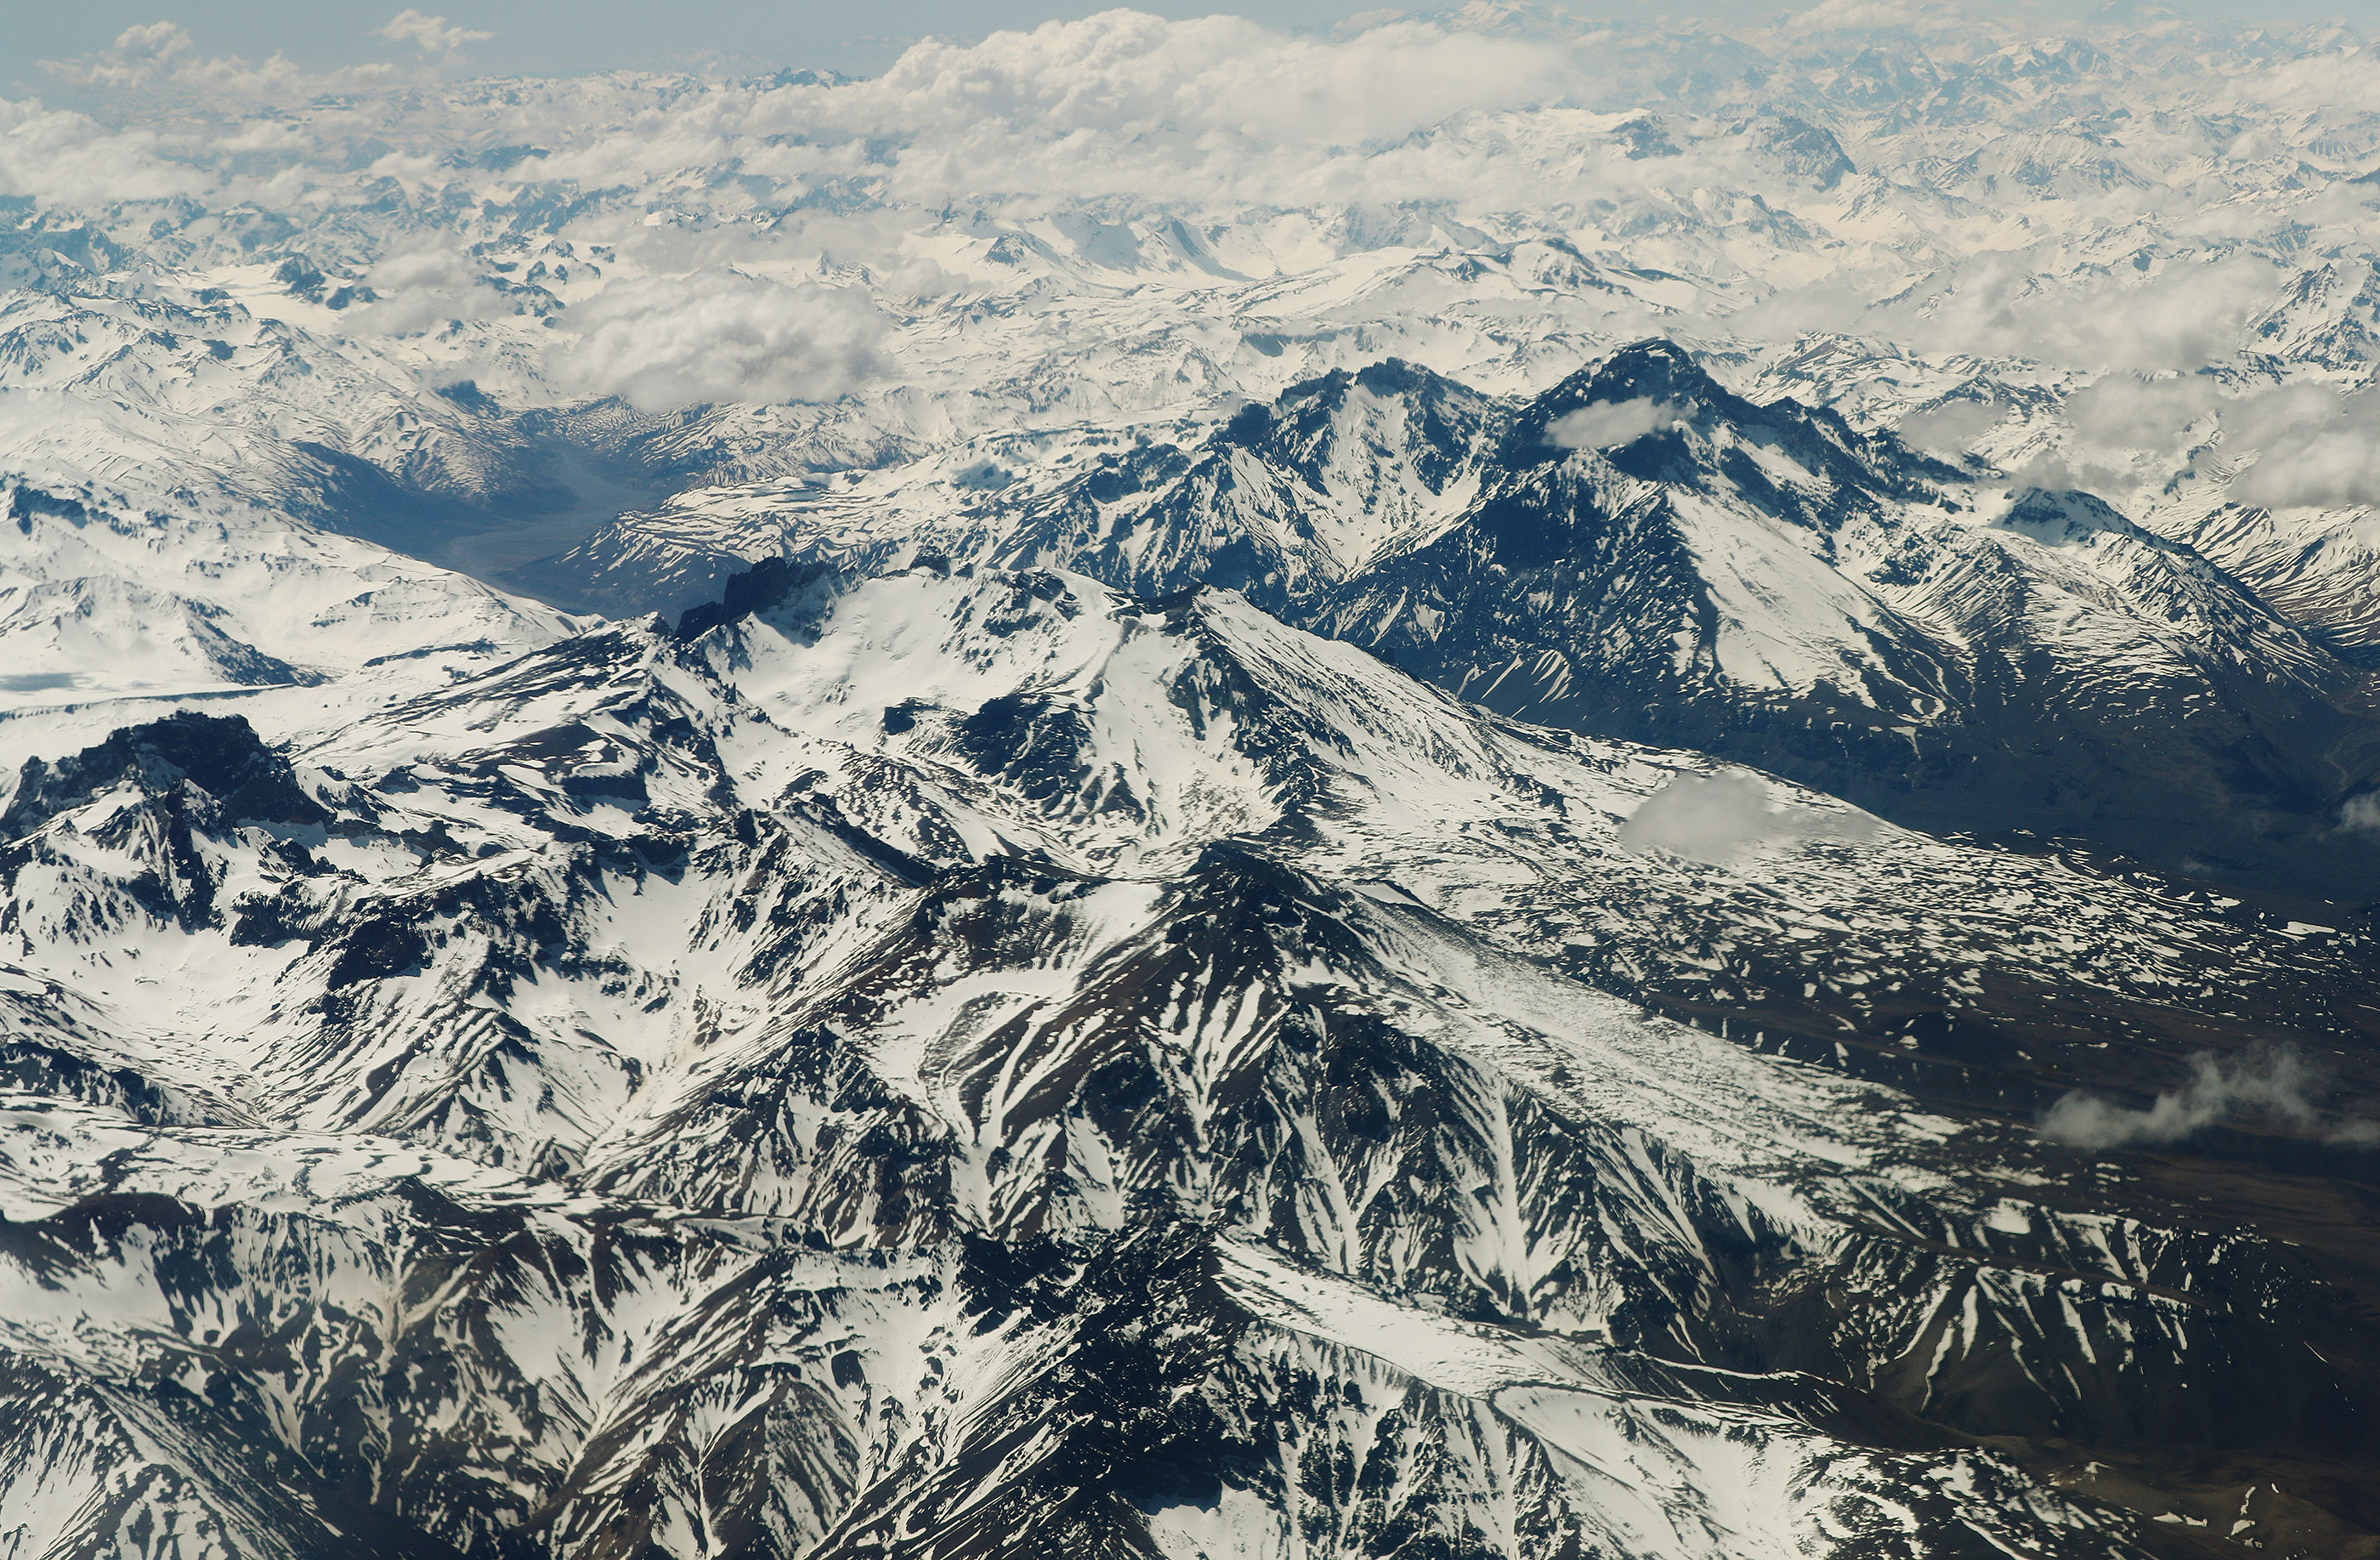 The Andes mountains are snow covered in Chile on Oct. 26, 2018.